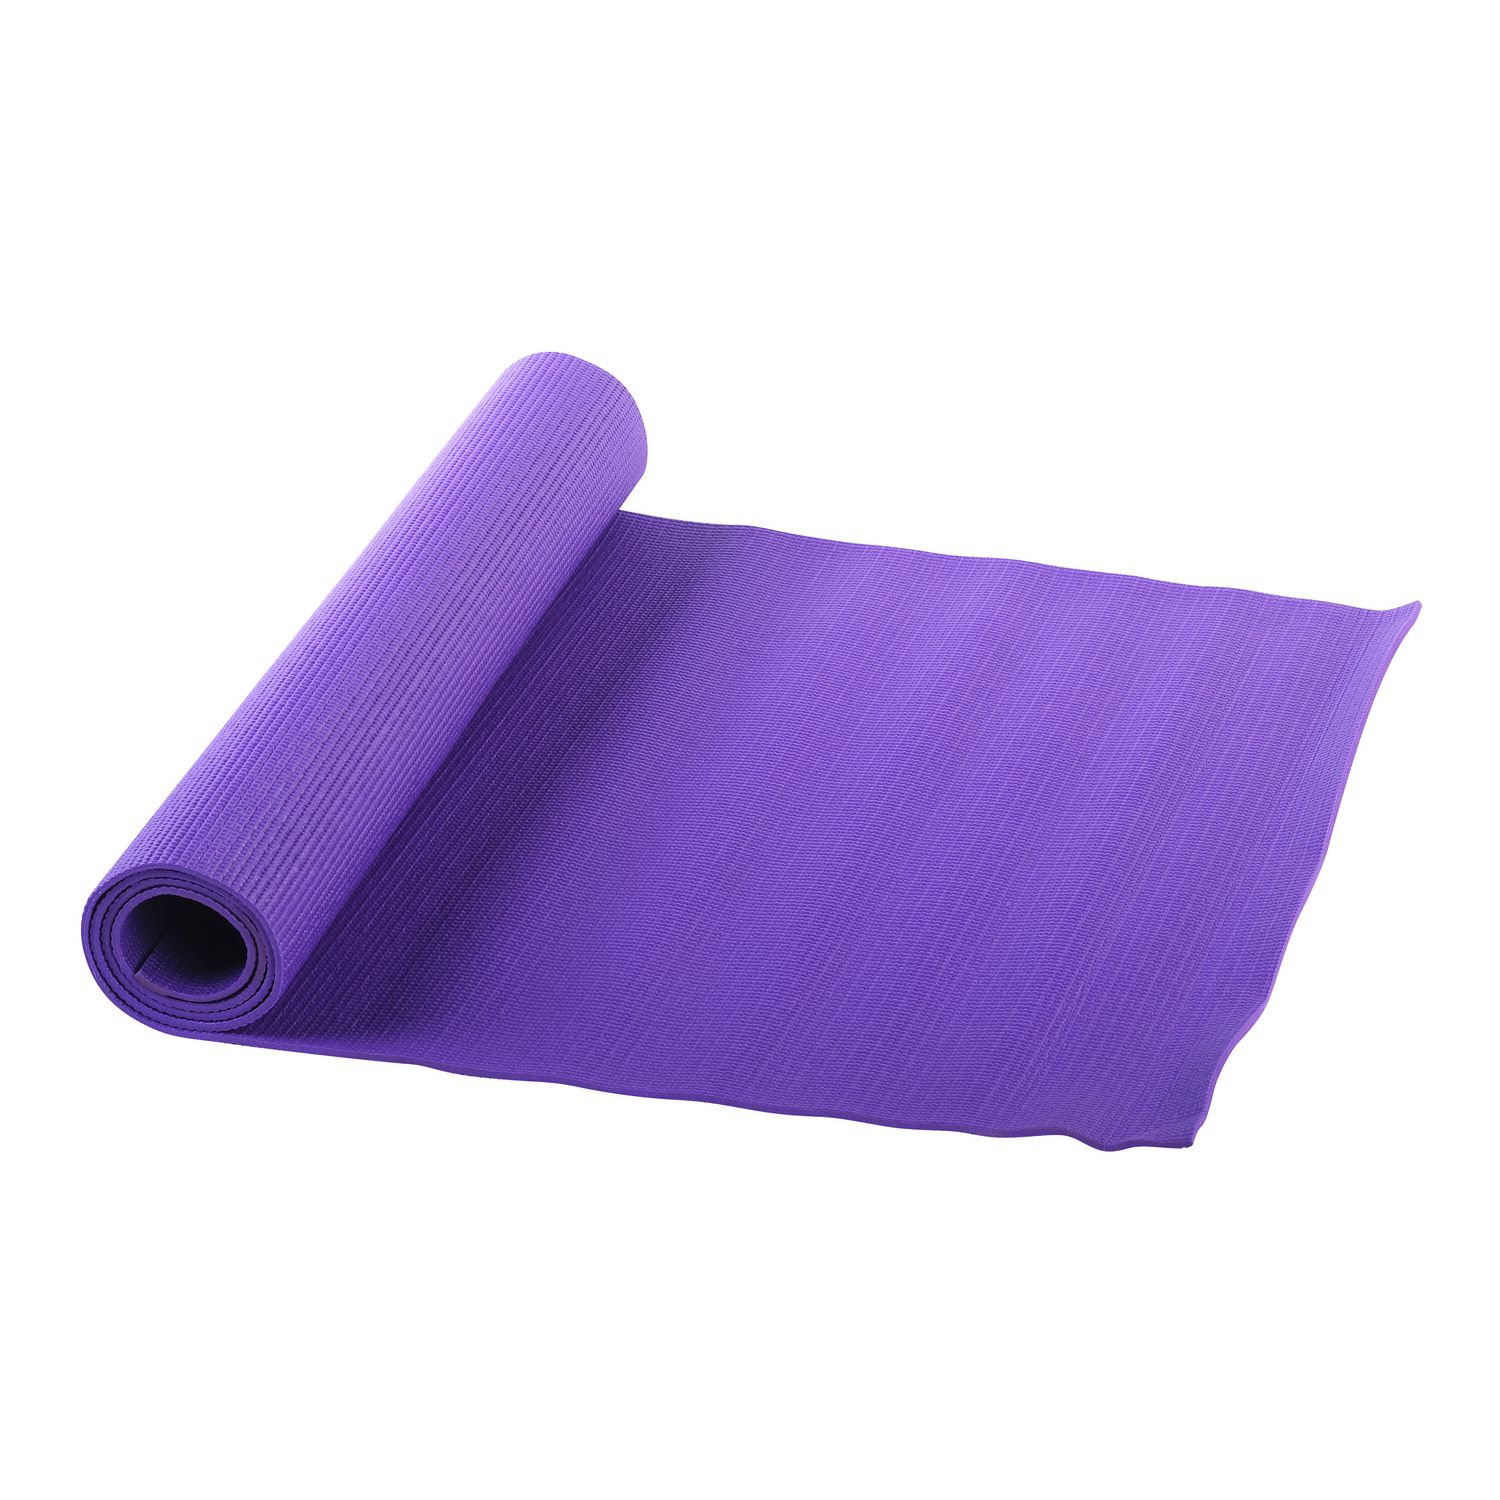 yogamats am mats rock yoga i fitness pu eagle werkshop mat present products purple new laser engraved affirmation